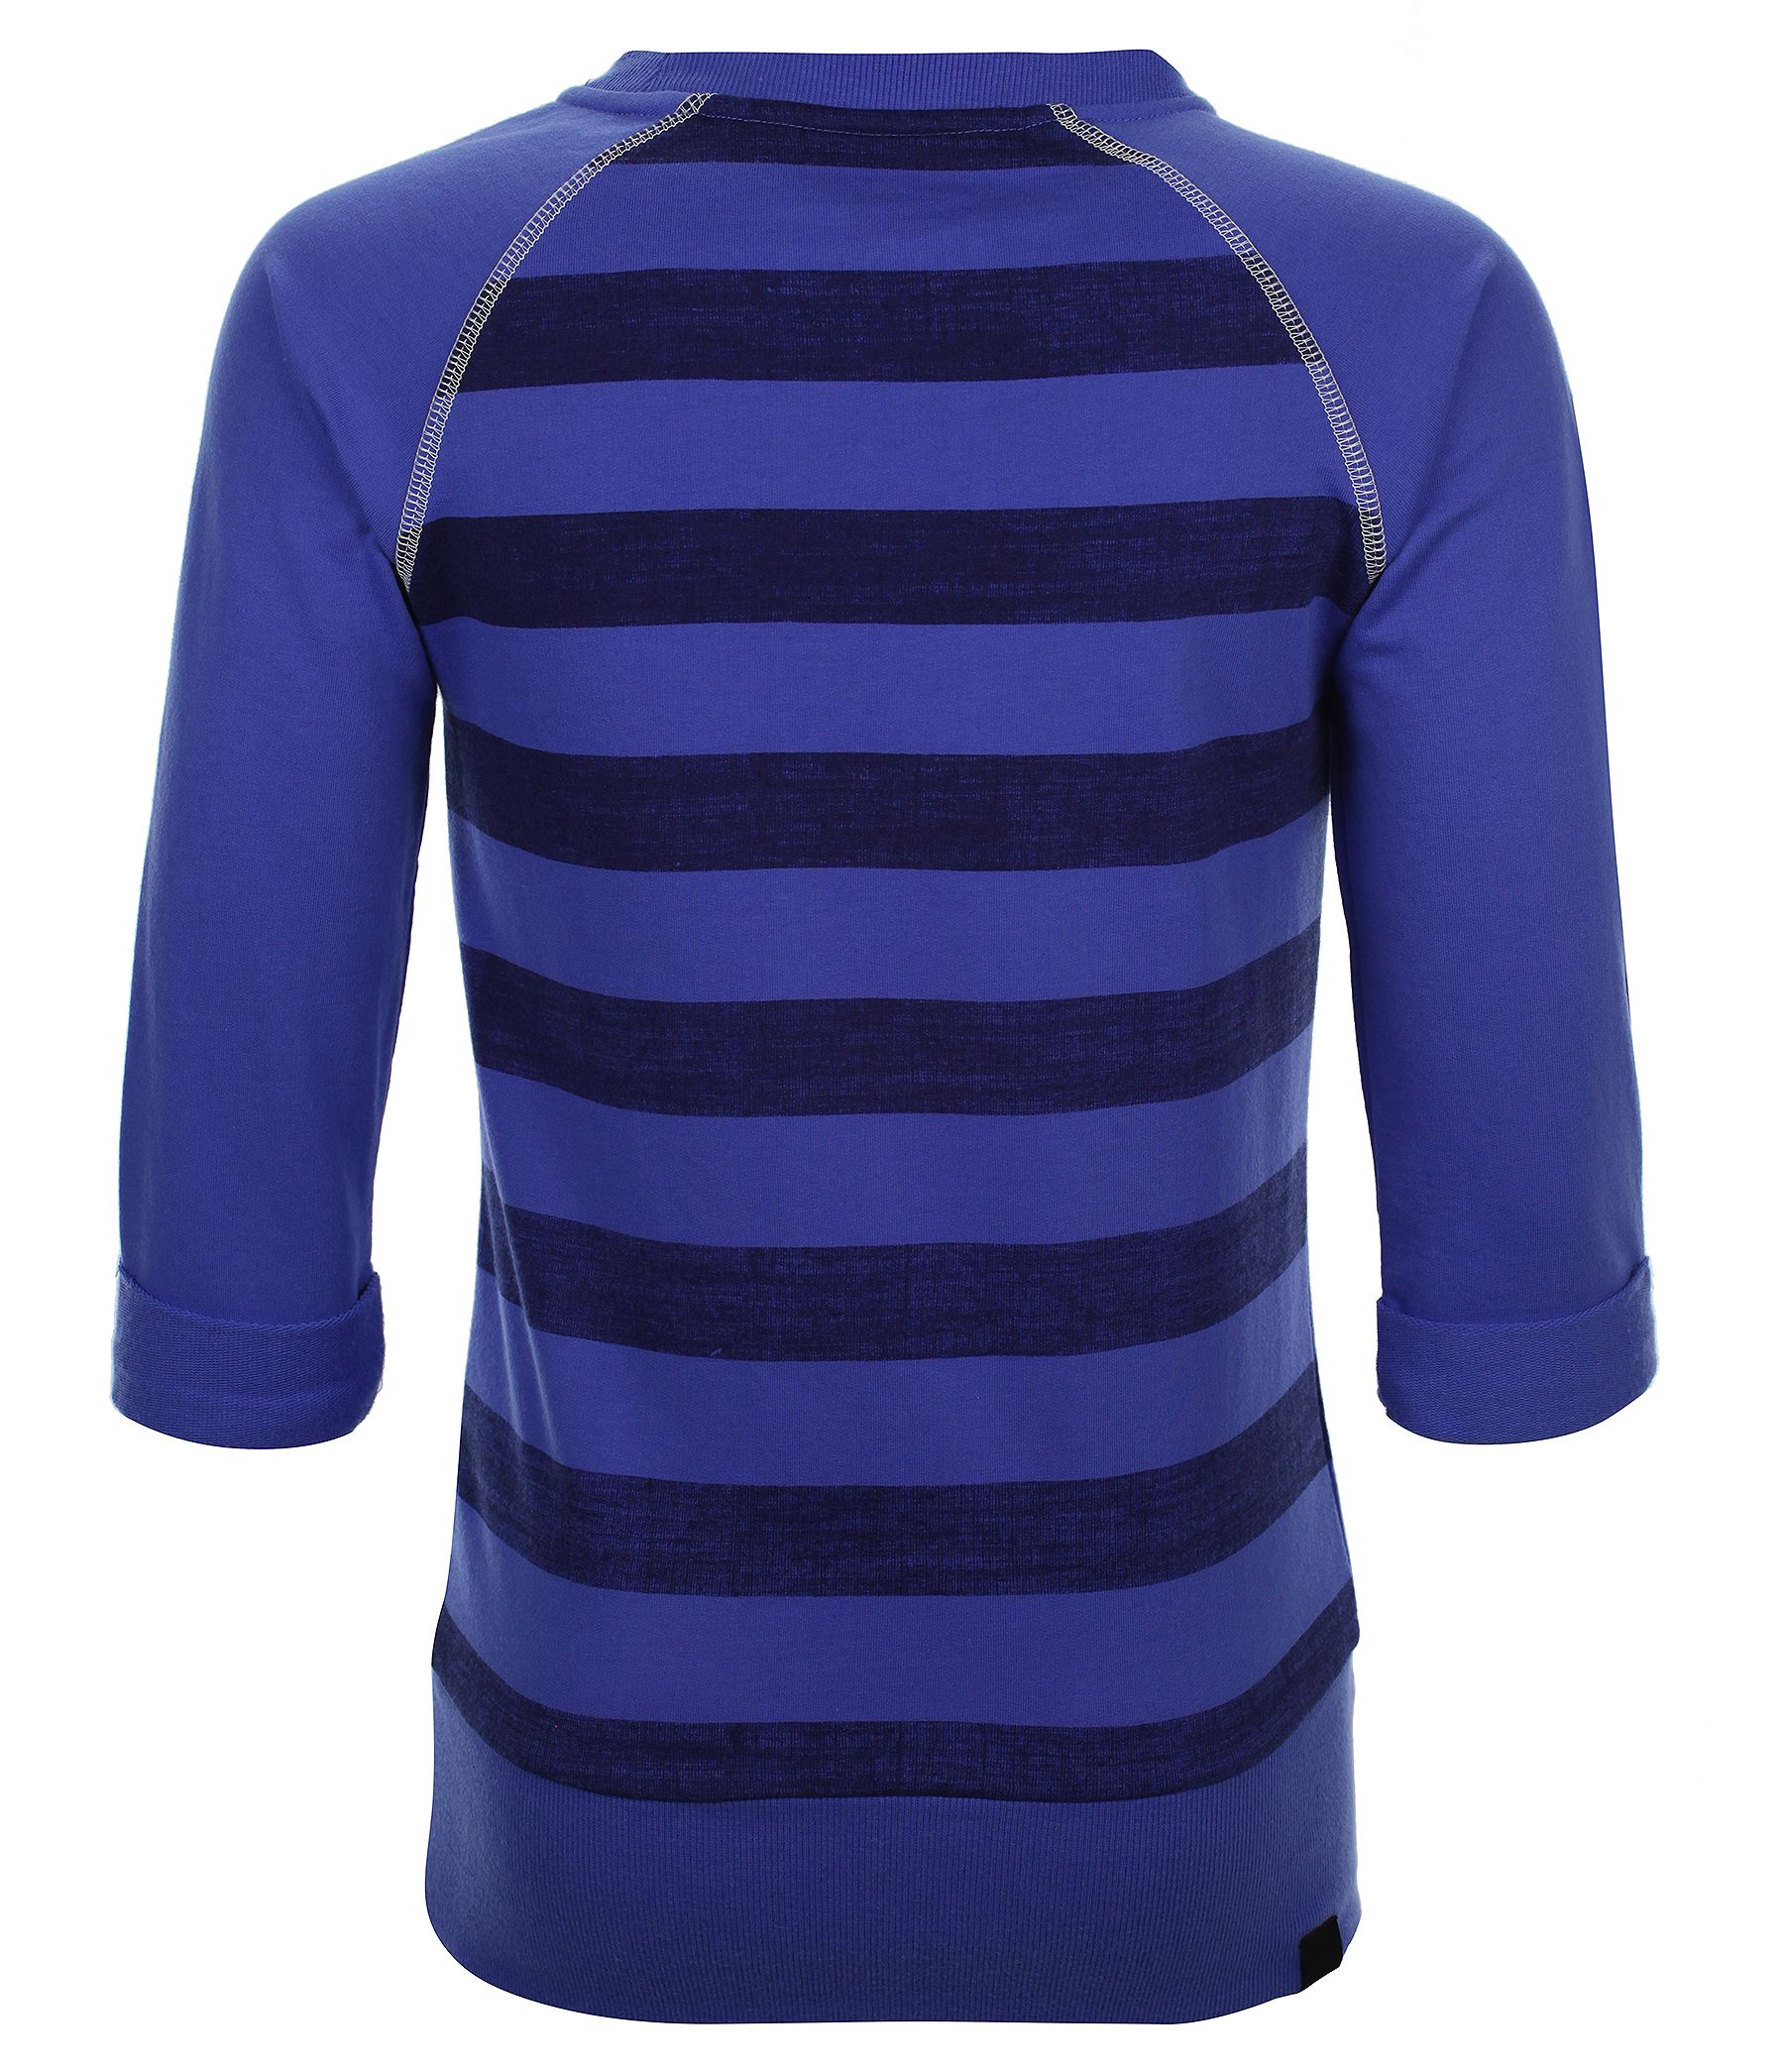 Girls storytimer striped sweatshirt